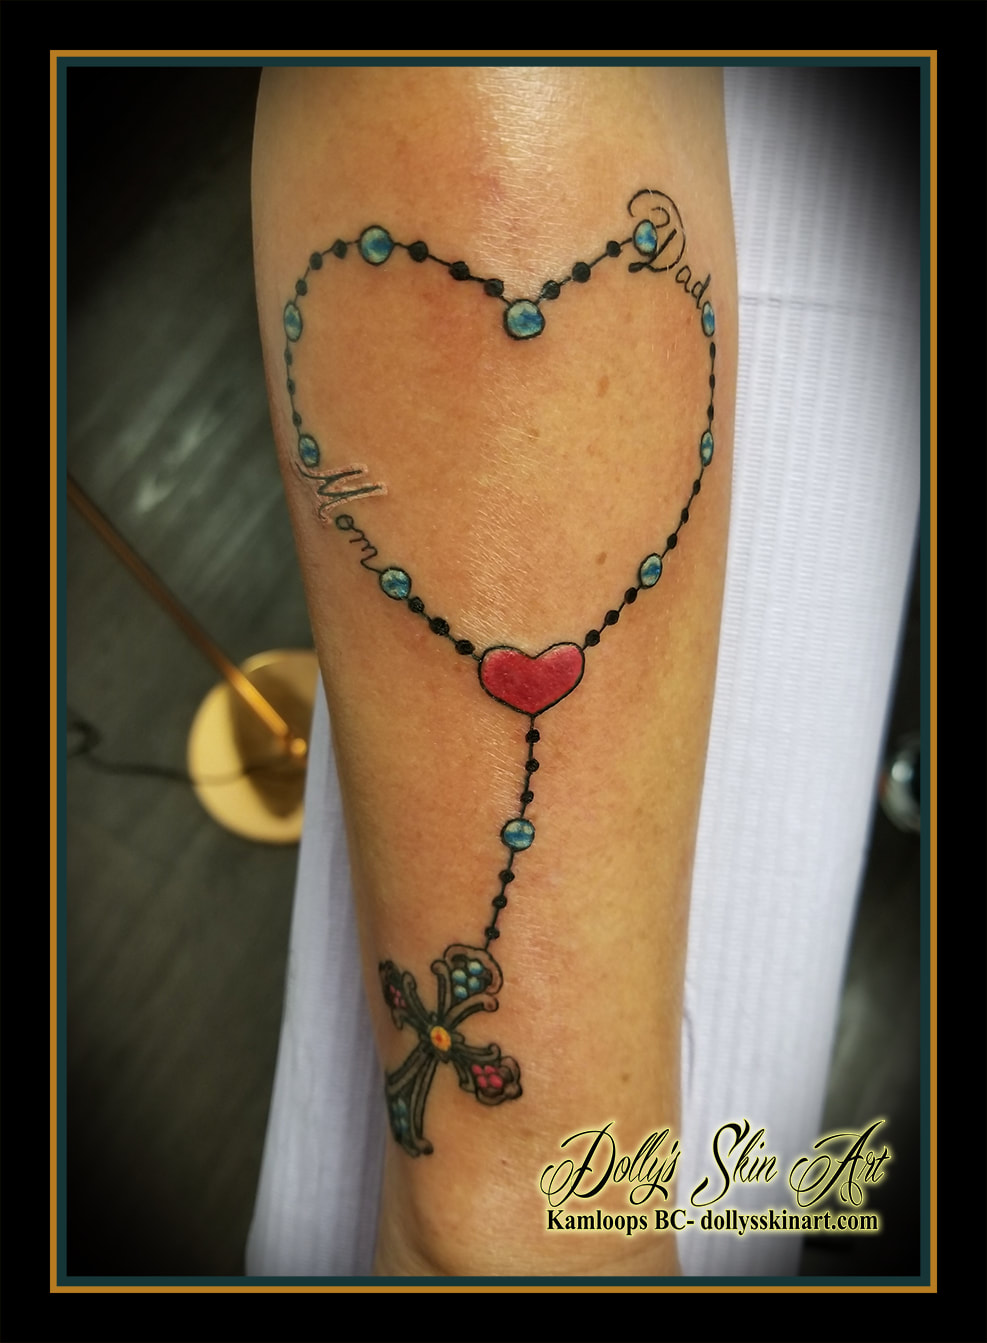 rosary colour heart forearm beads cross yellow blue red mom dad tattoo kamloops tattoo dolly's skin art